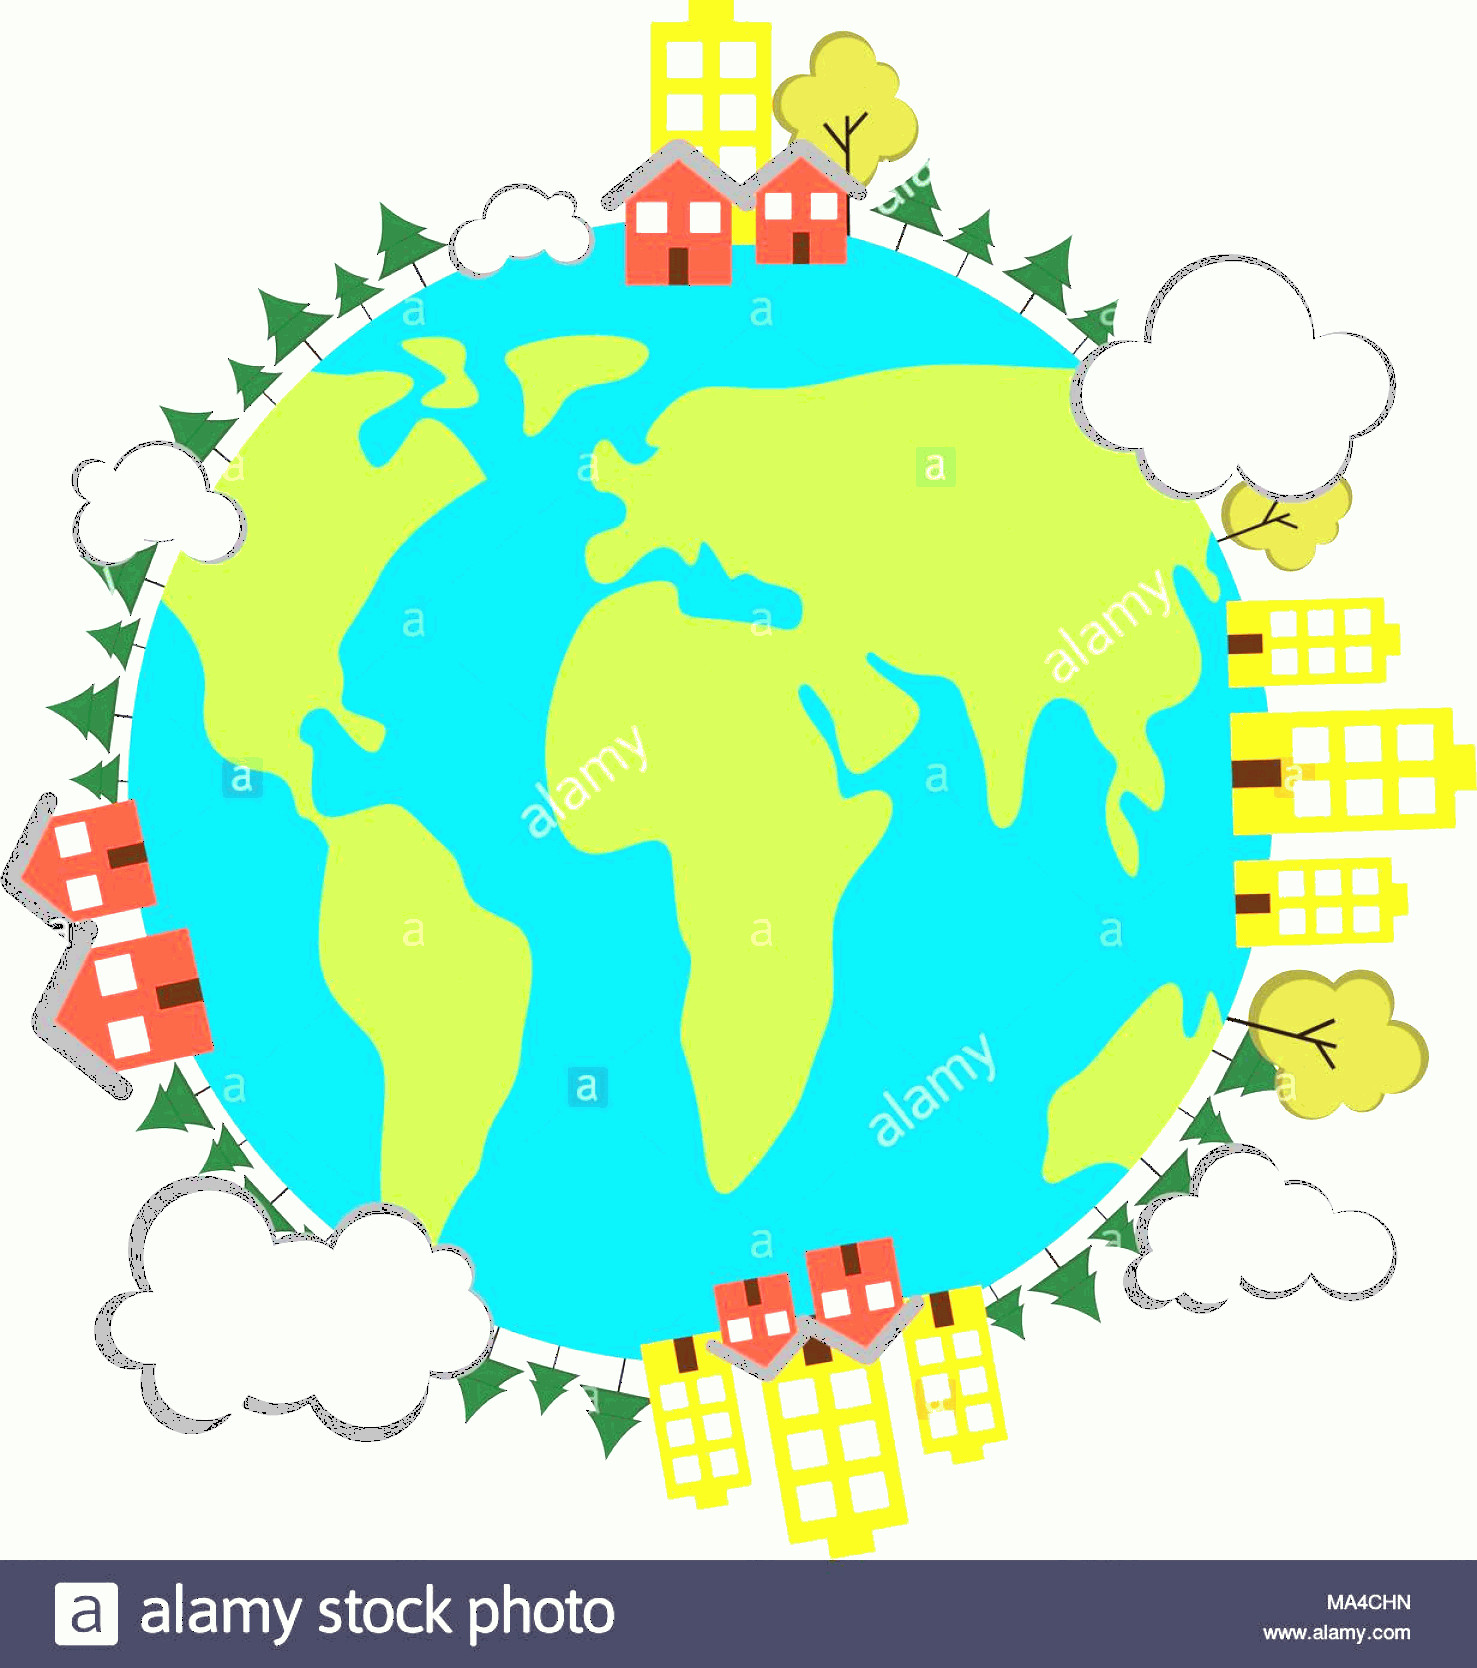 Earth With Buildings Vector: Earth With Buildings Icon Earth Day Image